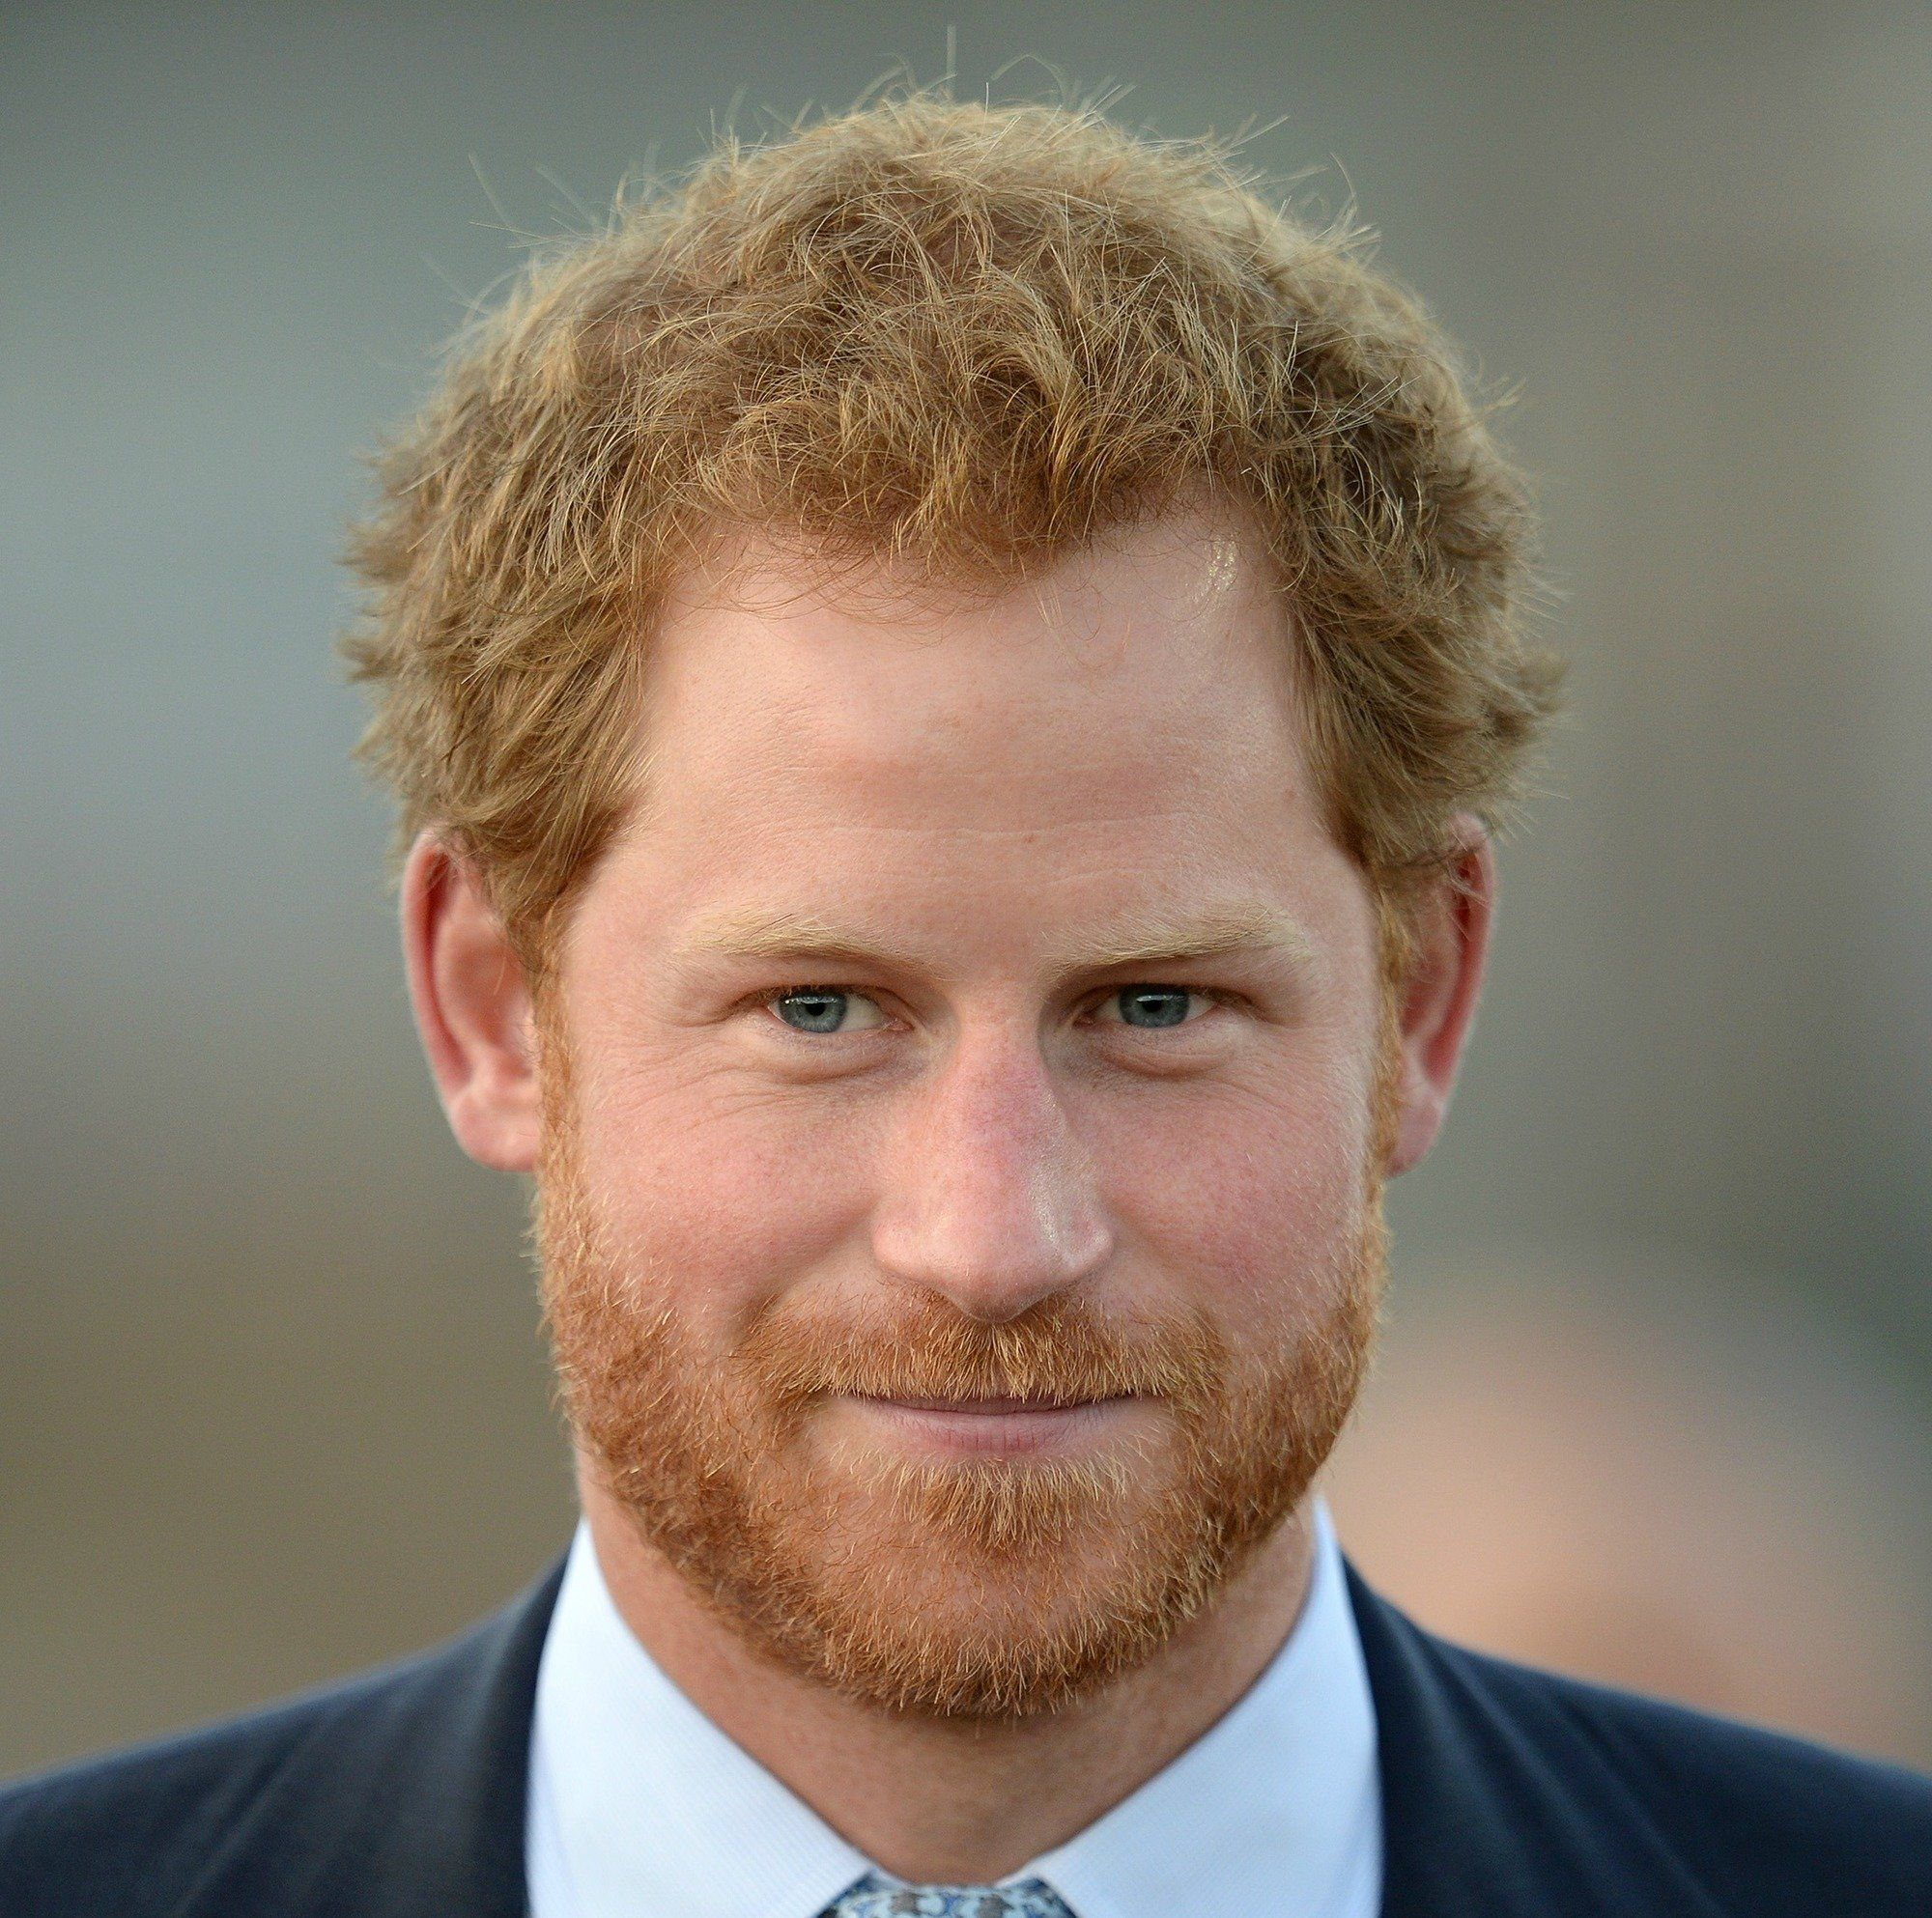 20 Reasons Prince Harry Is A Better Catch Than Prince